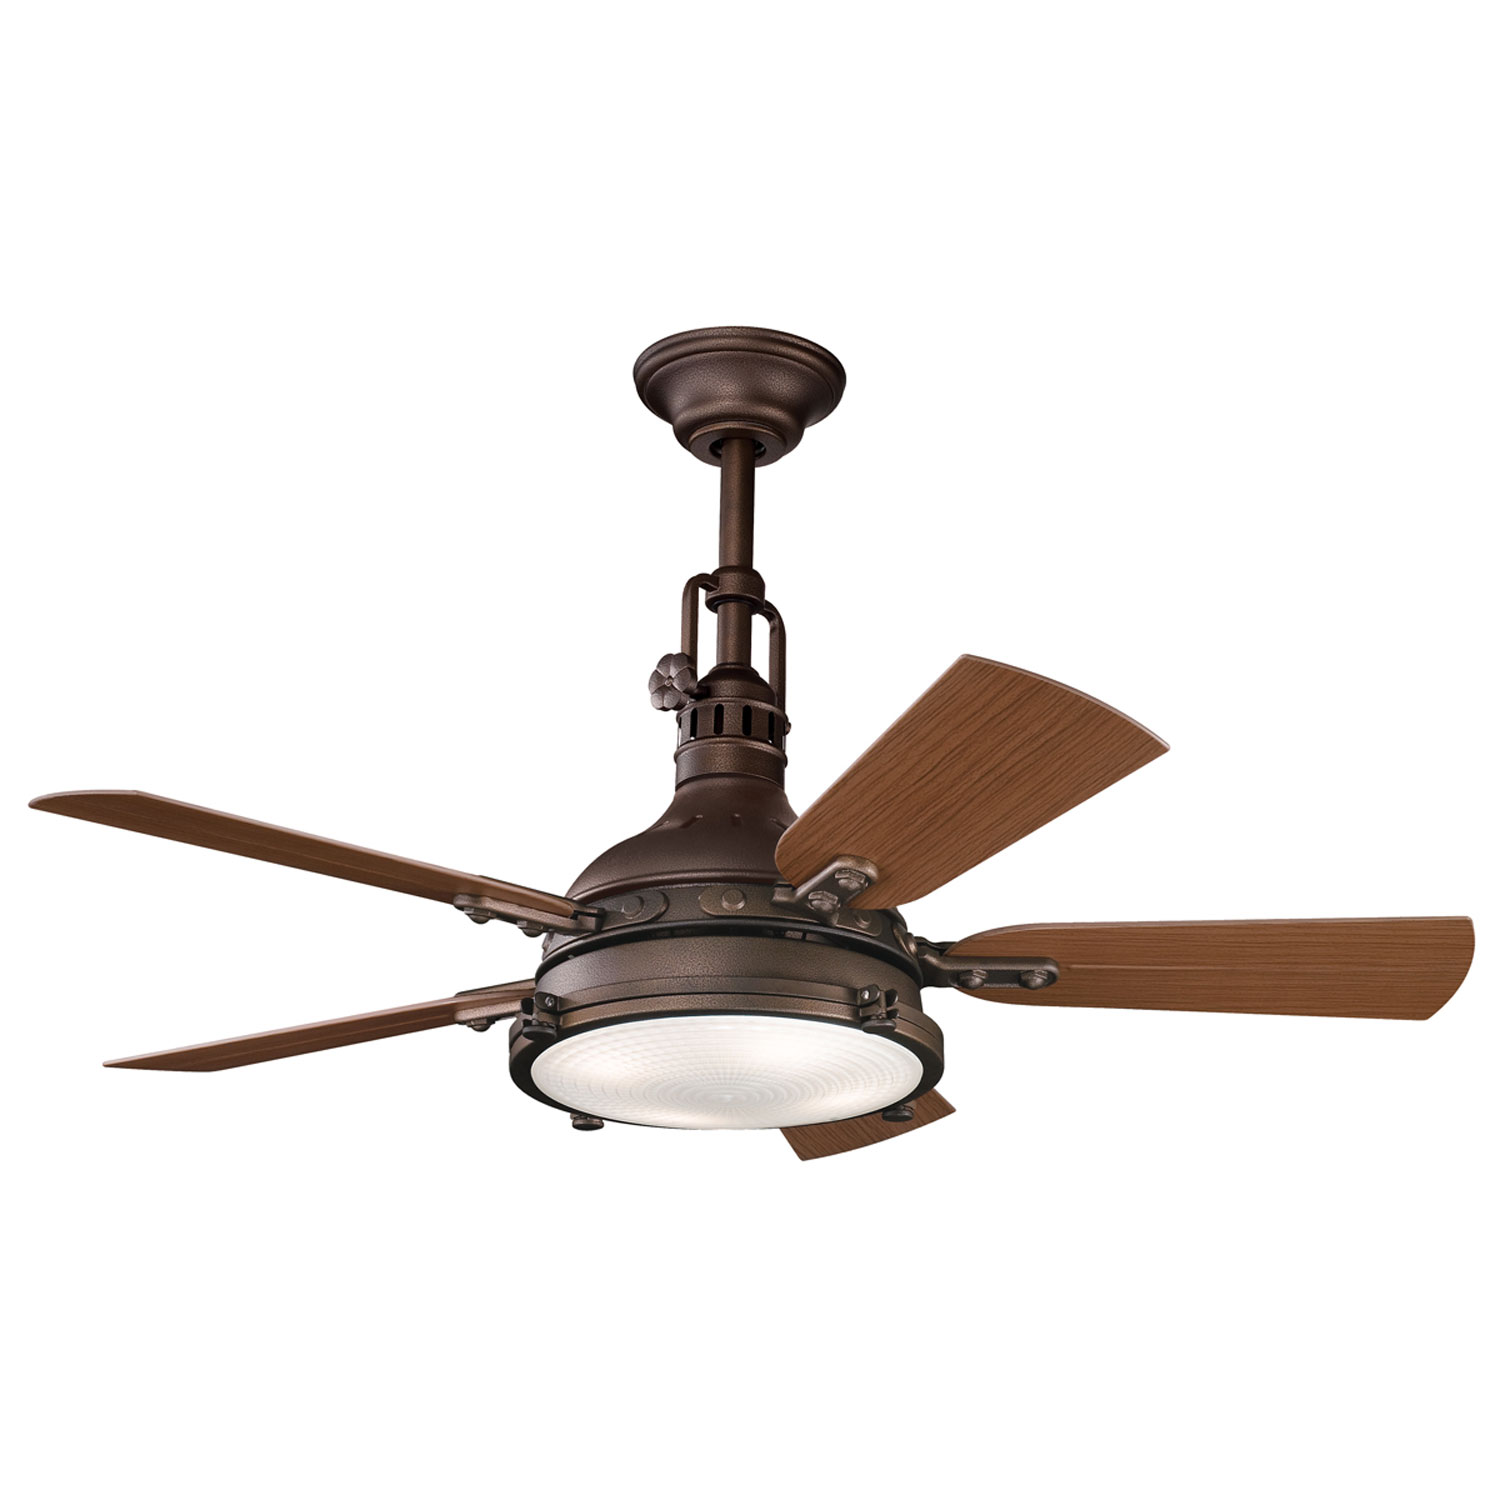 44 inchCeiling Fan from the Patio collection by Kichler 310101TZP